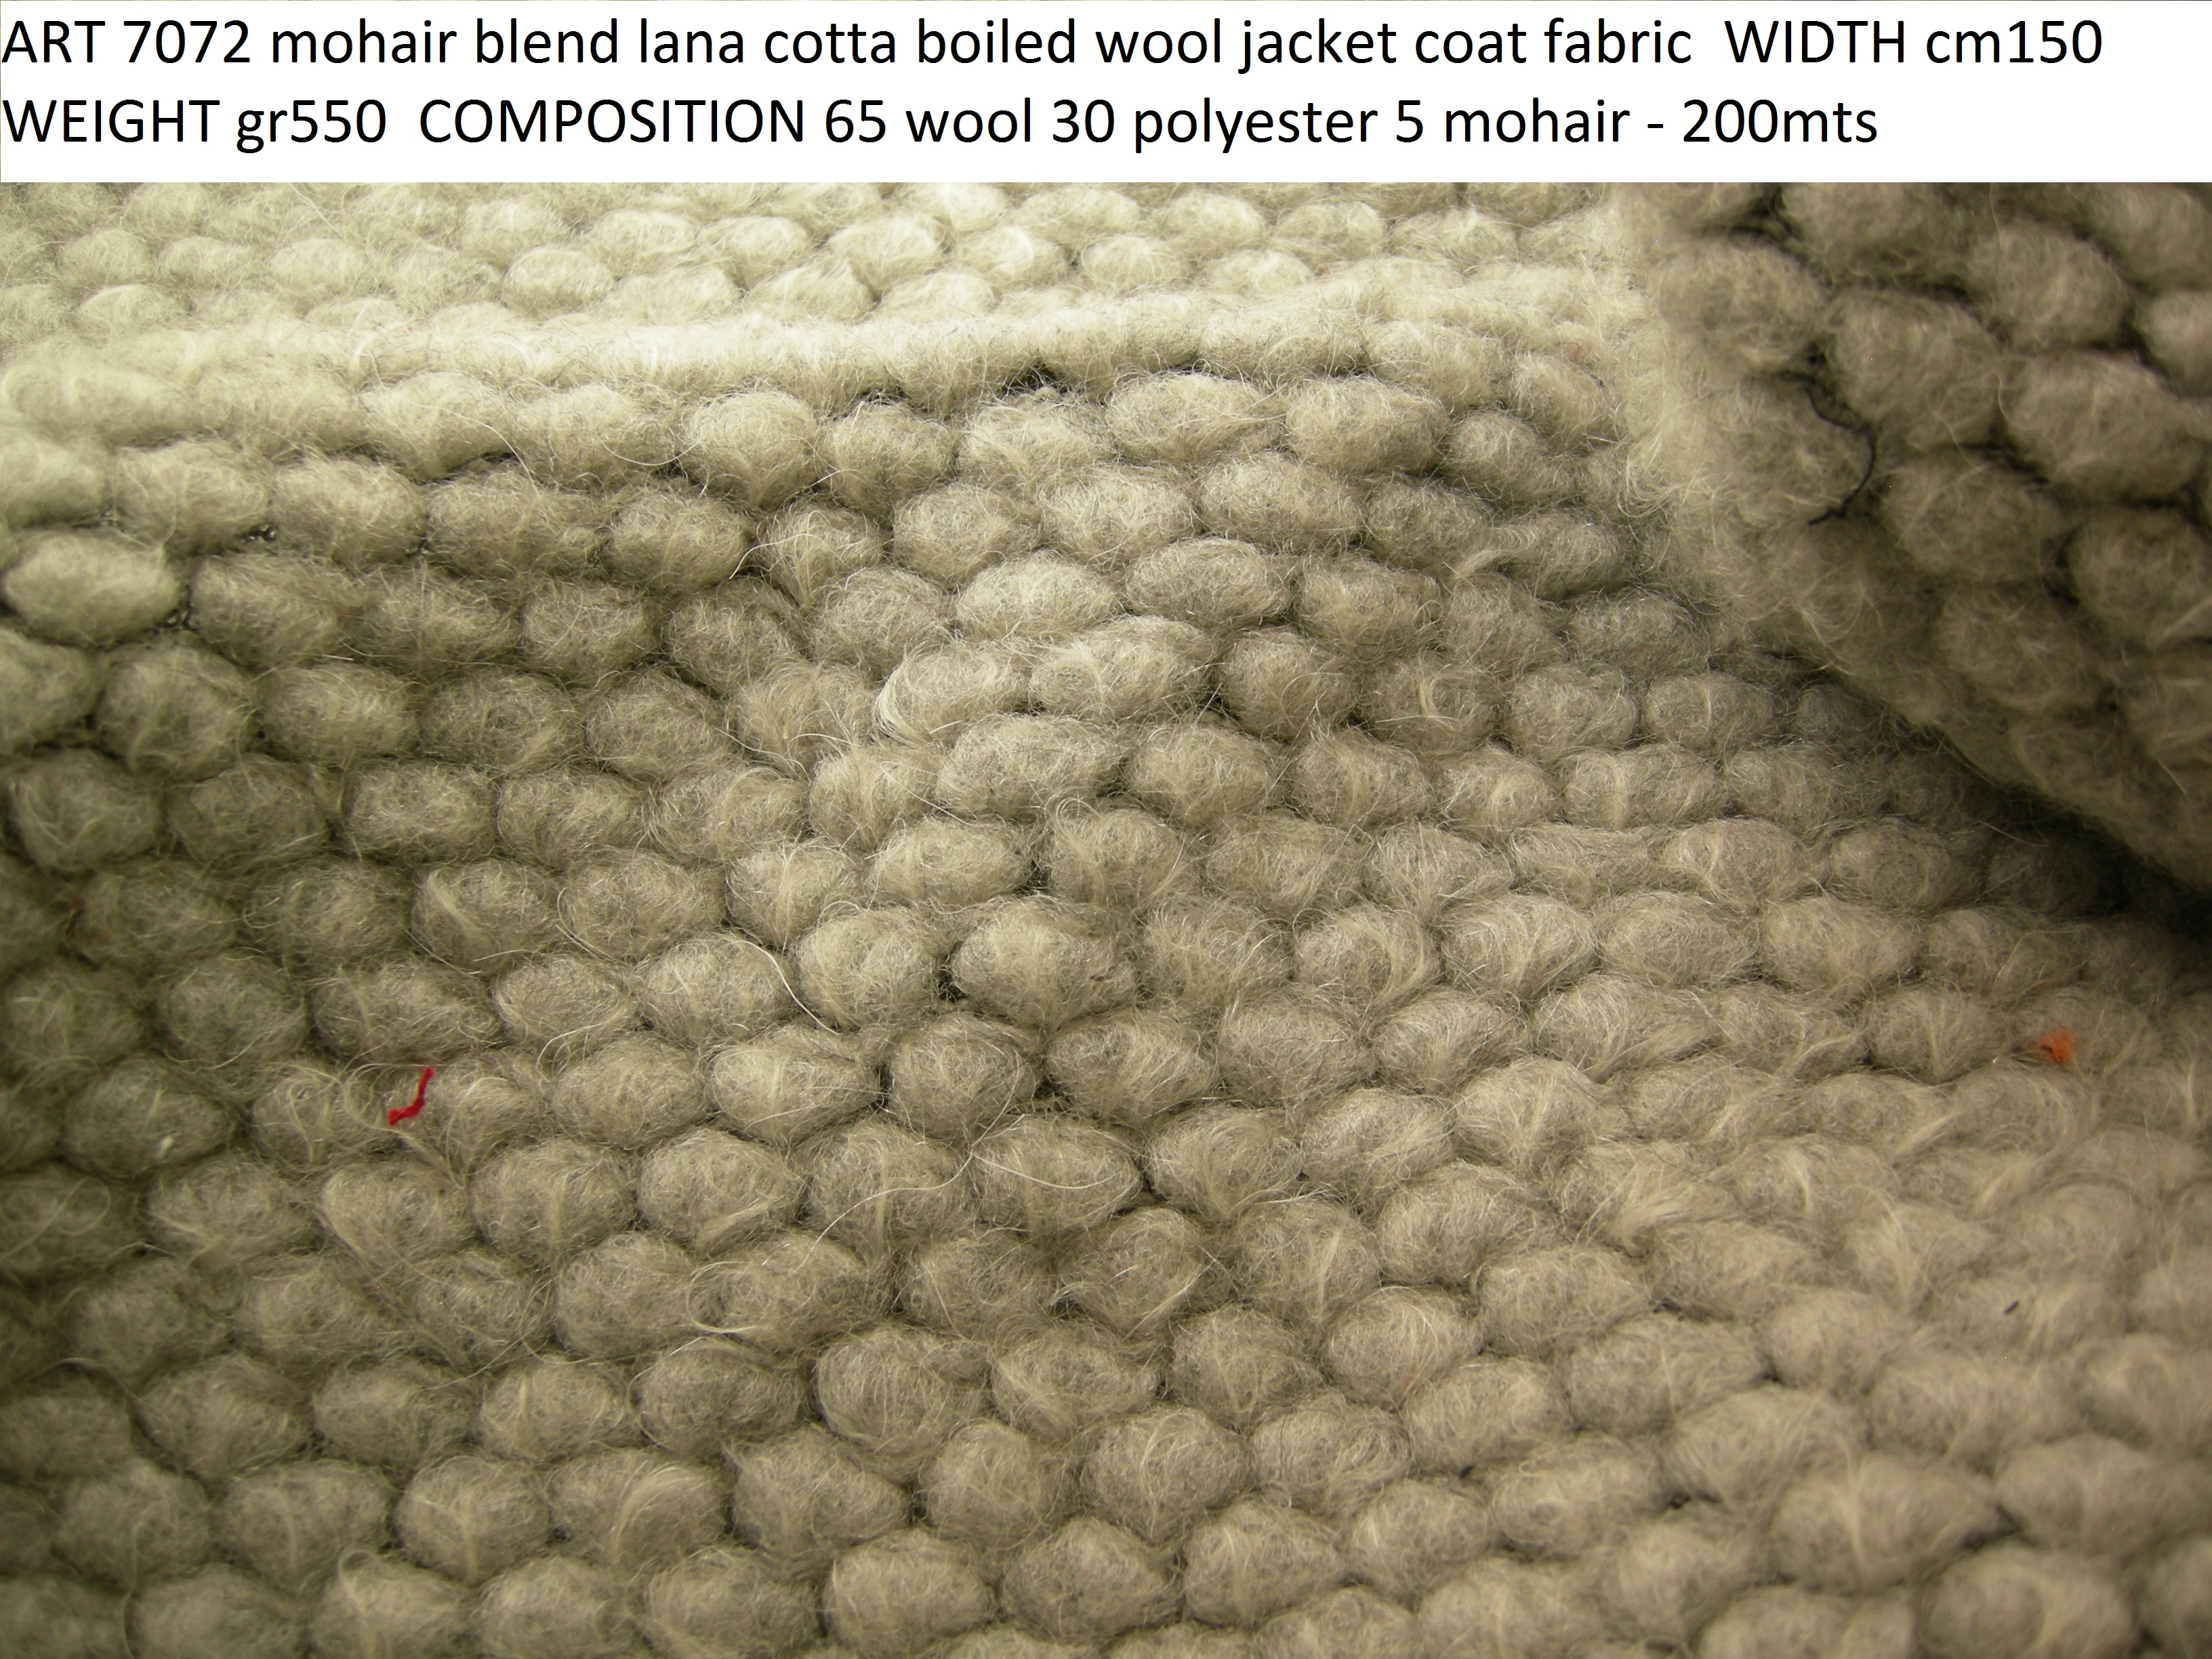 ART 7072 mohair blend lana cotta boiled wool jacket coat fabric WIDTH cm150 WEIGHT gr550 COMPOSITION 65 wool 30 polyester 5 mohair - 200mts